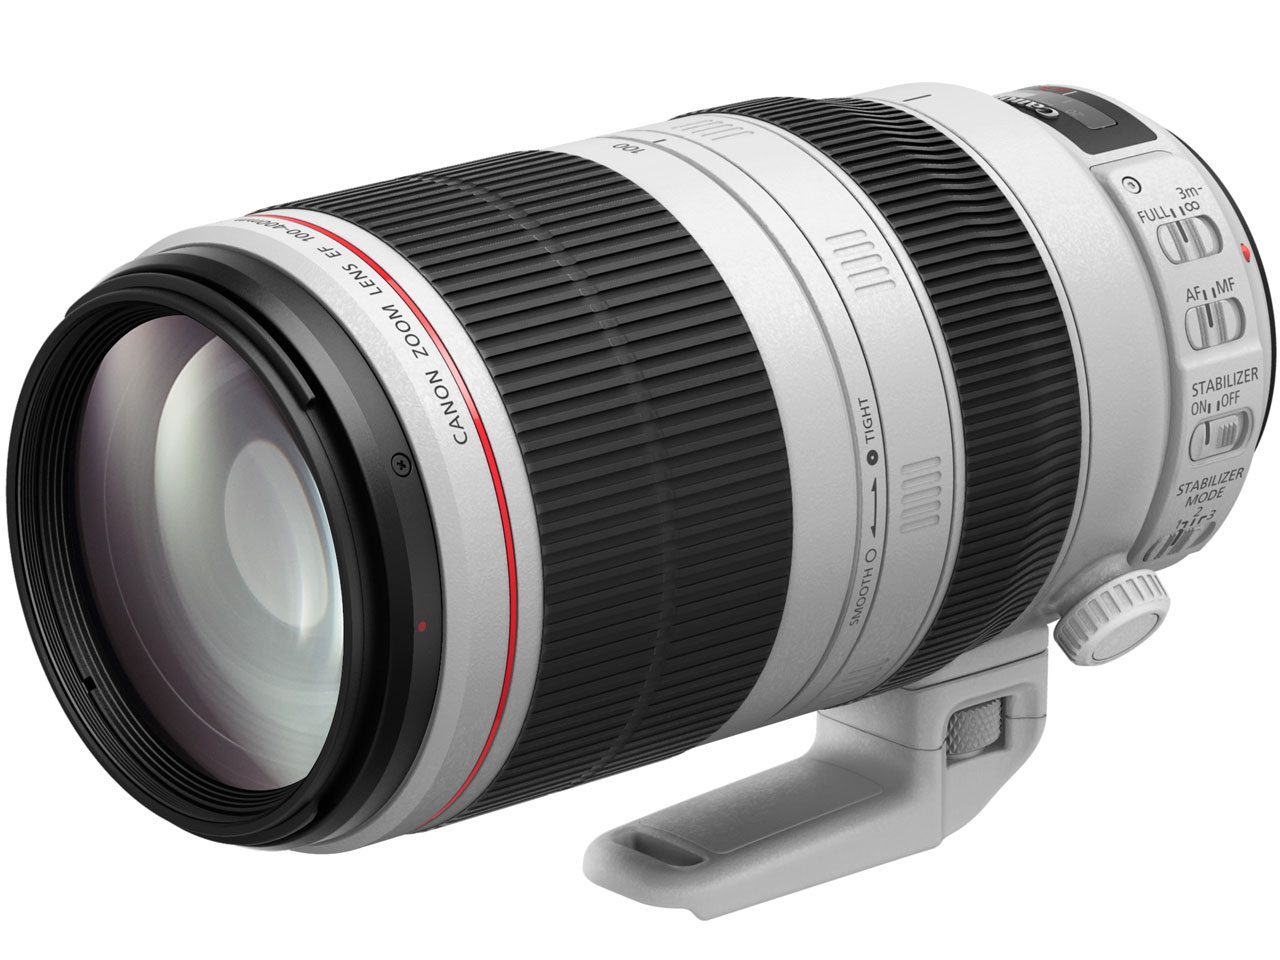 EF100-400mm F4.5-5.6L IS II USM の製品画像